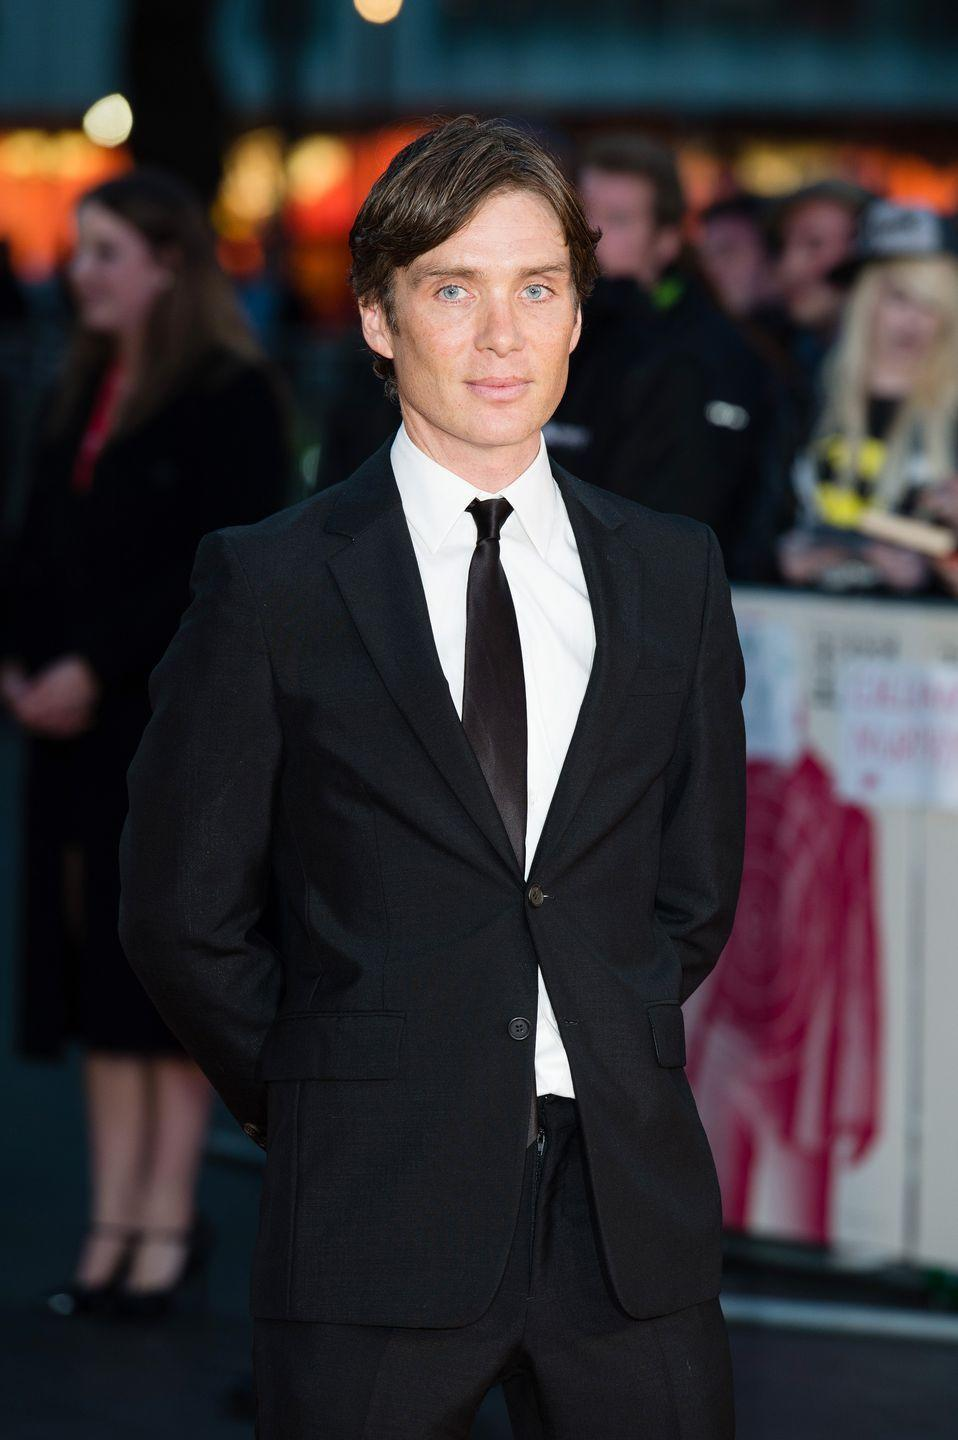 <p>Only one Bond before has been Irish—Piece Brosnan—but no Bond before has been Cillian Murphy, and that is just a crying shame. While some might find Murphy's characters more villainous than Bond-like, we don't see this as a problem in the slightest. Because let's just admit it: James Bond kind of is villainous. He's a straight up unfeeling sociopath. </p><p>Murphy has been inhabiting the traumatized, violent, unstable Thomas Shelby for years now. Bond is just Thomas Shelby with more denial. Give him an updated suit and a new haircut and call it a day. We have our next 007, gentlemen: James fookin Bond. —JSC</p>